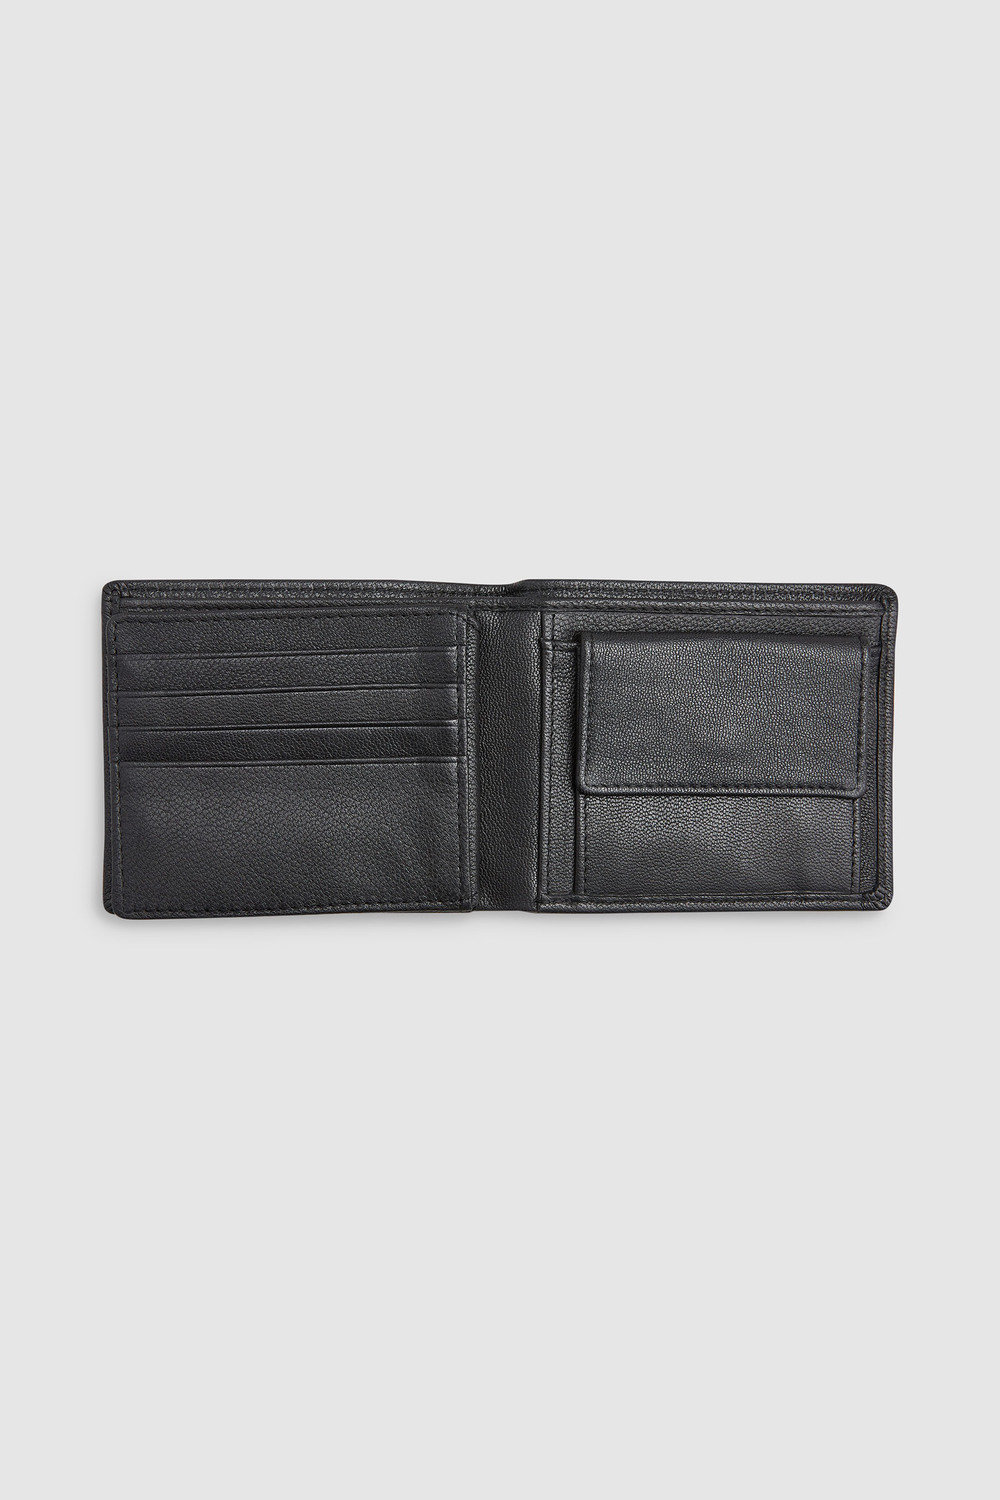 Next Leather Stag Badge Extra Capacity Wallet Online  cf0f4d2c7ed0